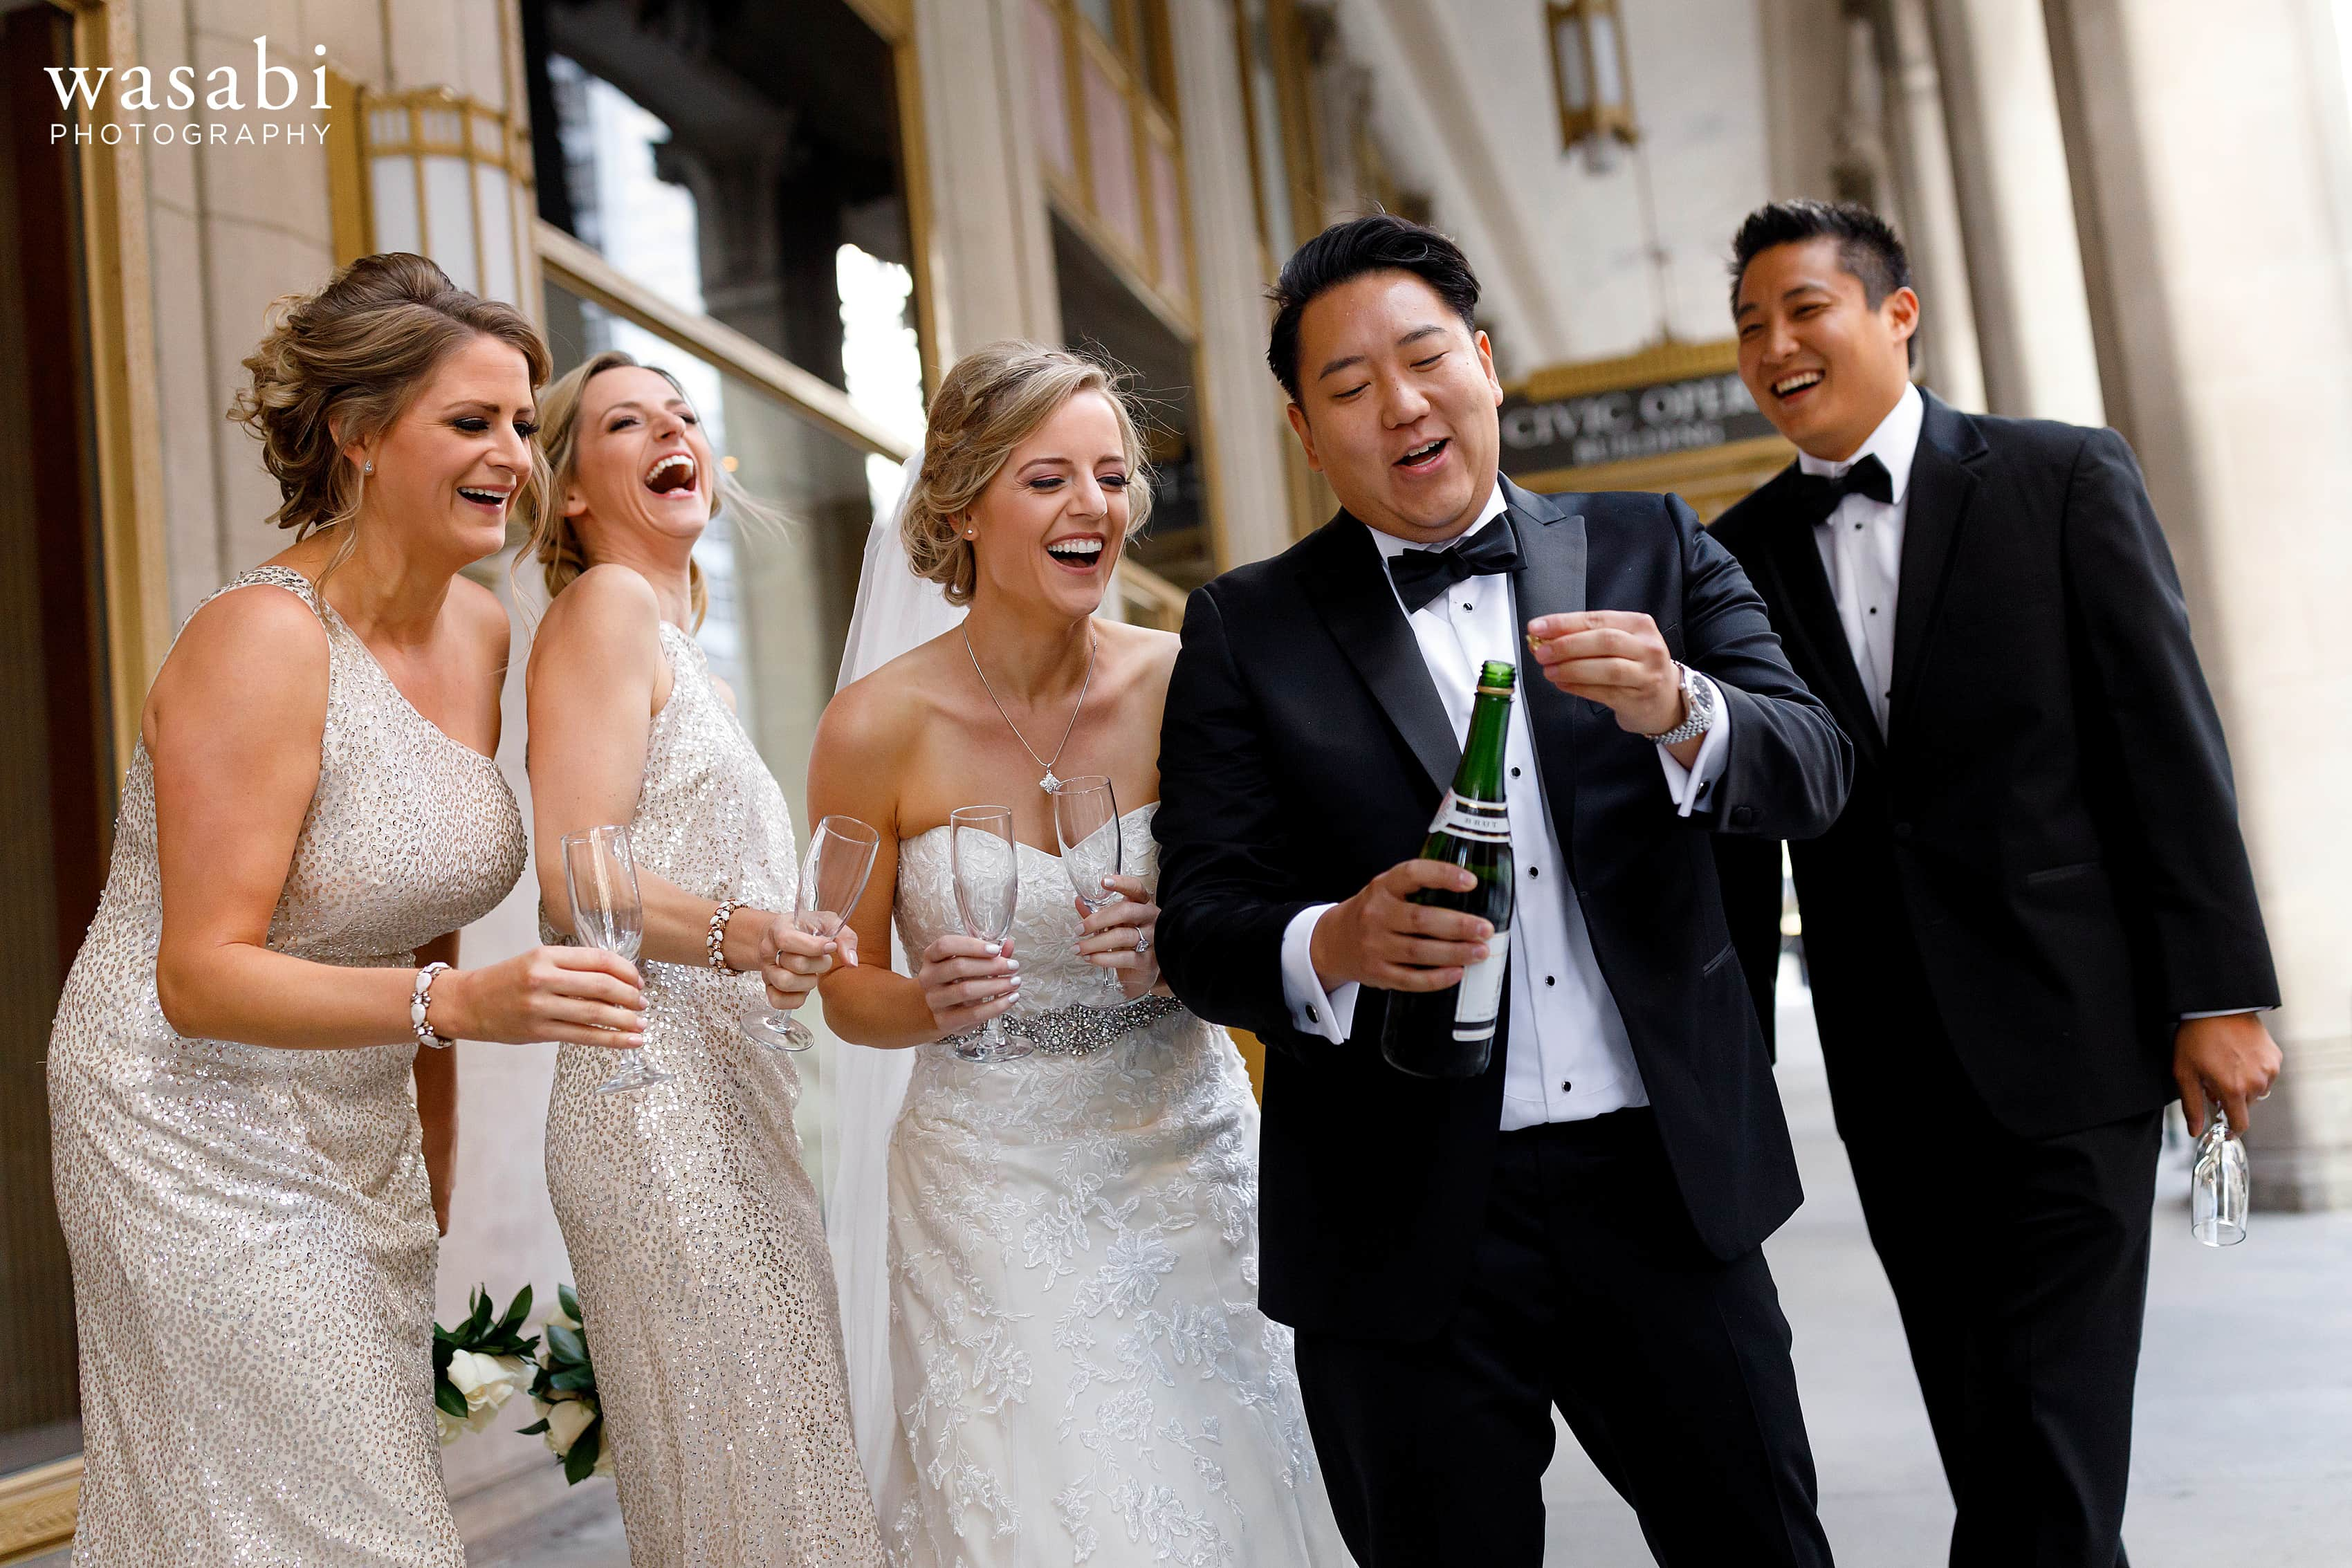 wedding party laughs as groom pops bottle of champagne outside Civic Opera House in Chicago